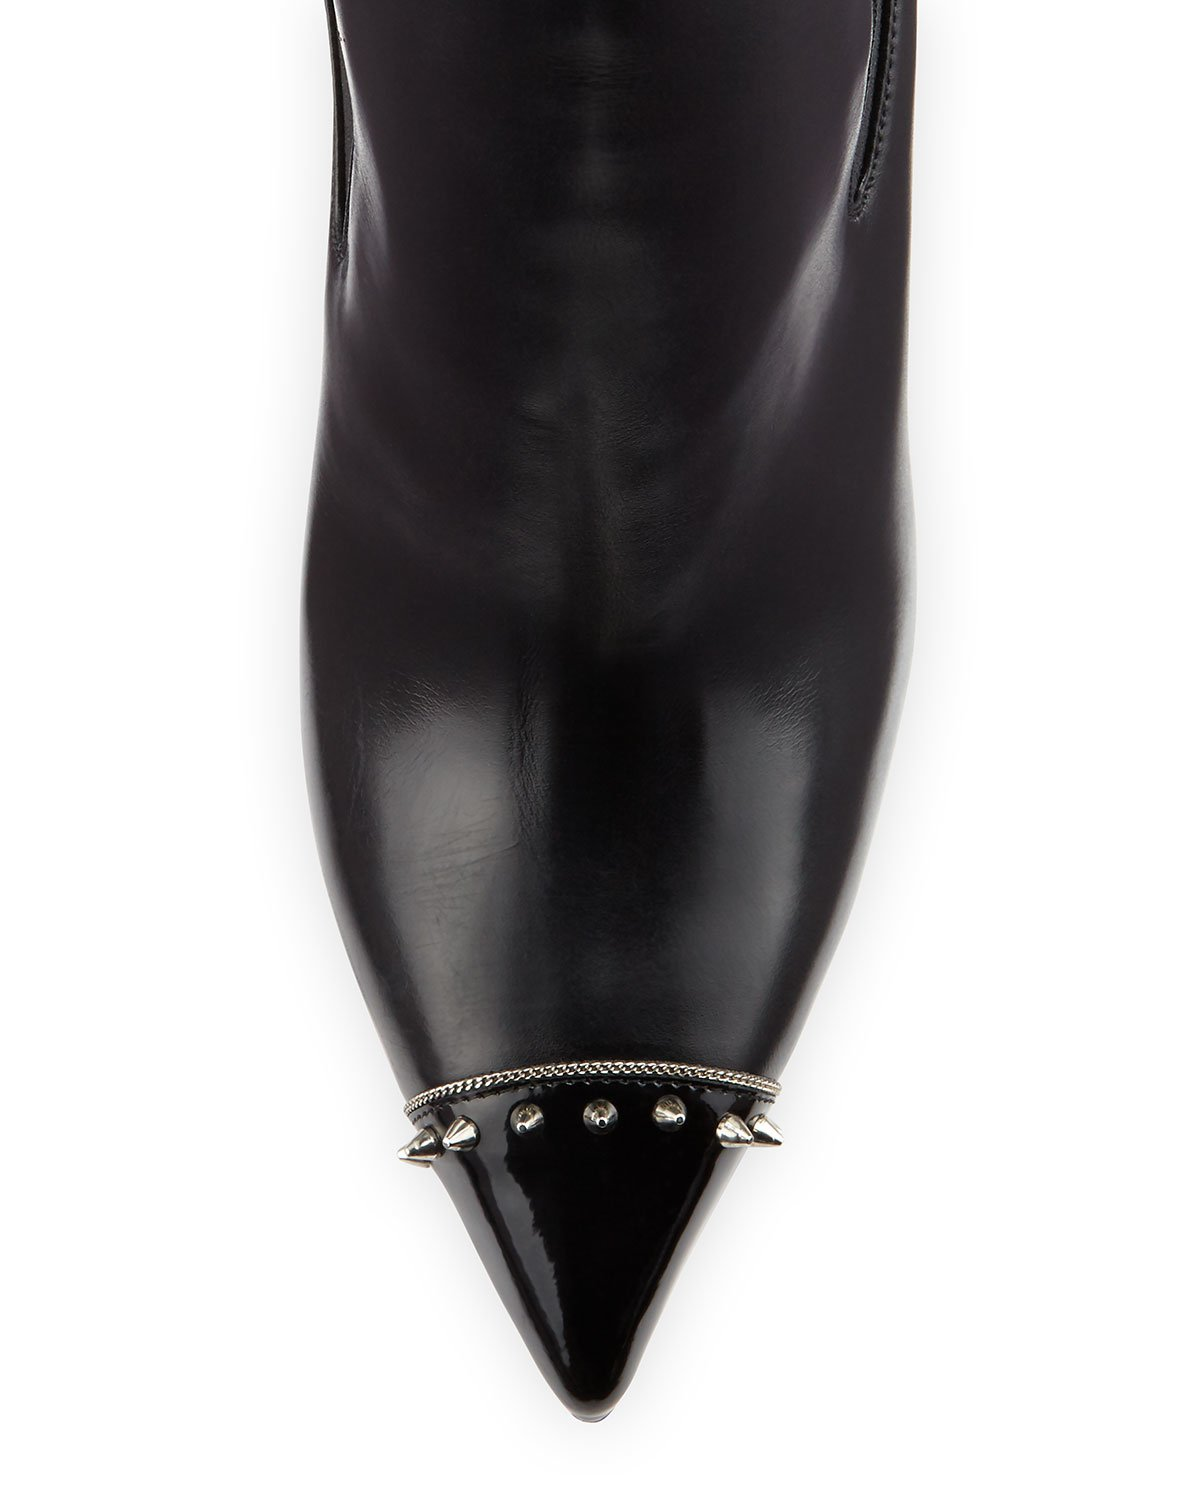 bouton shoes christian louboutin - Christian louboutin Banjo Spiked Leather Boots in Black | Lyst